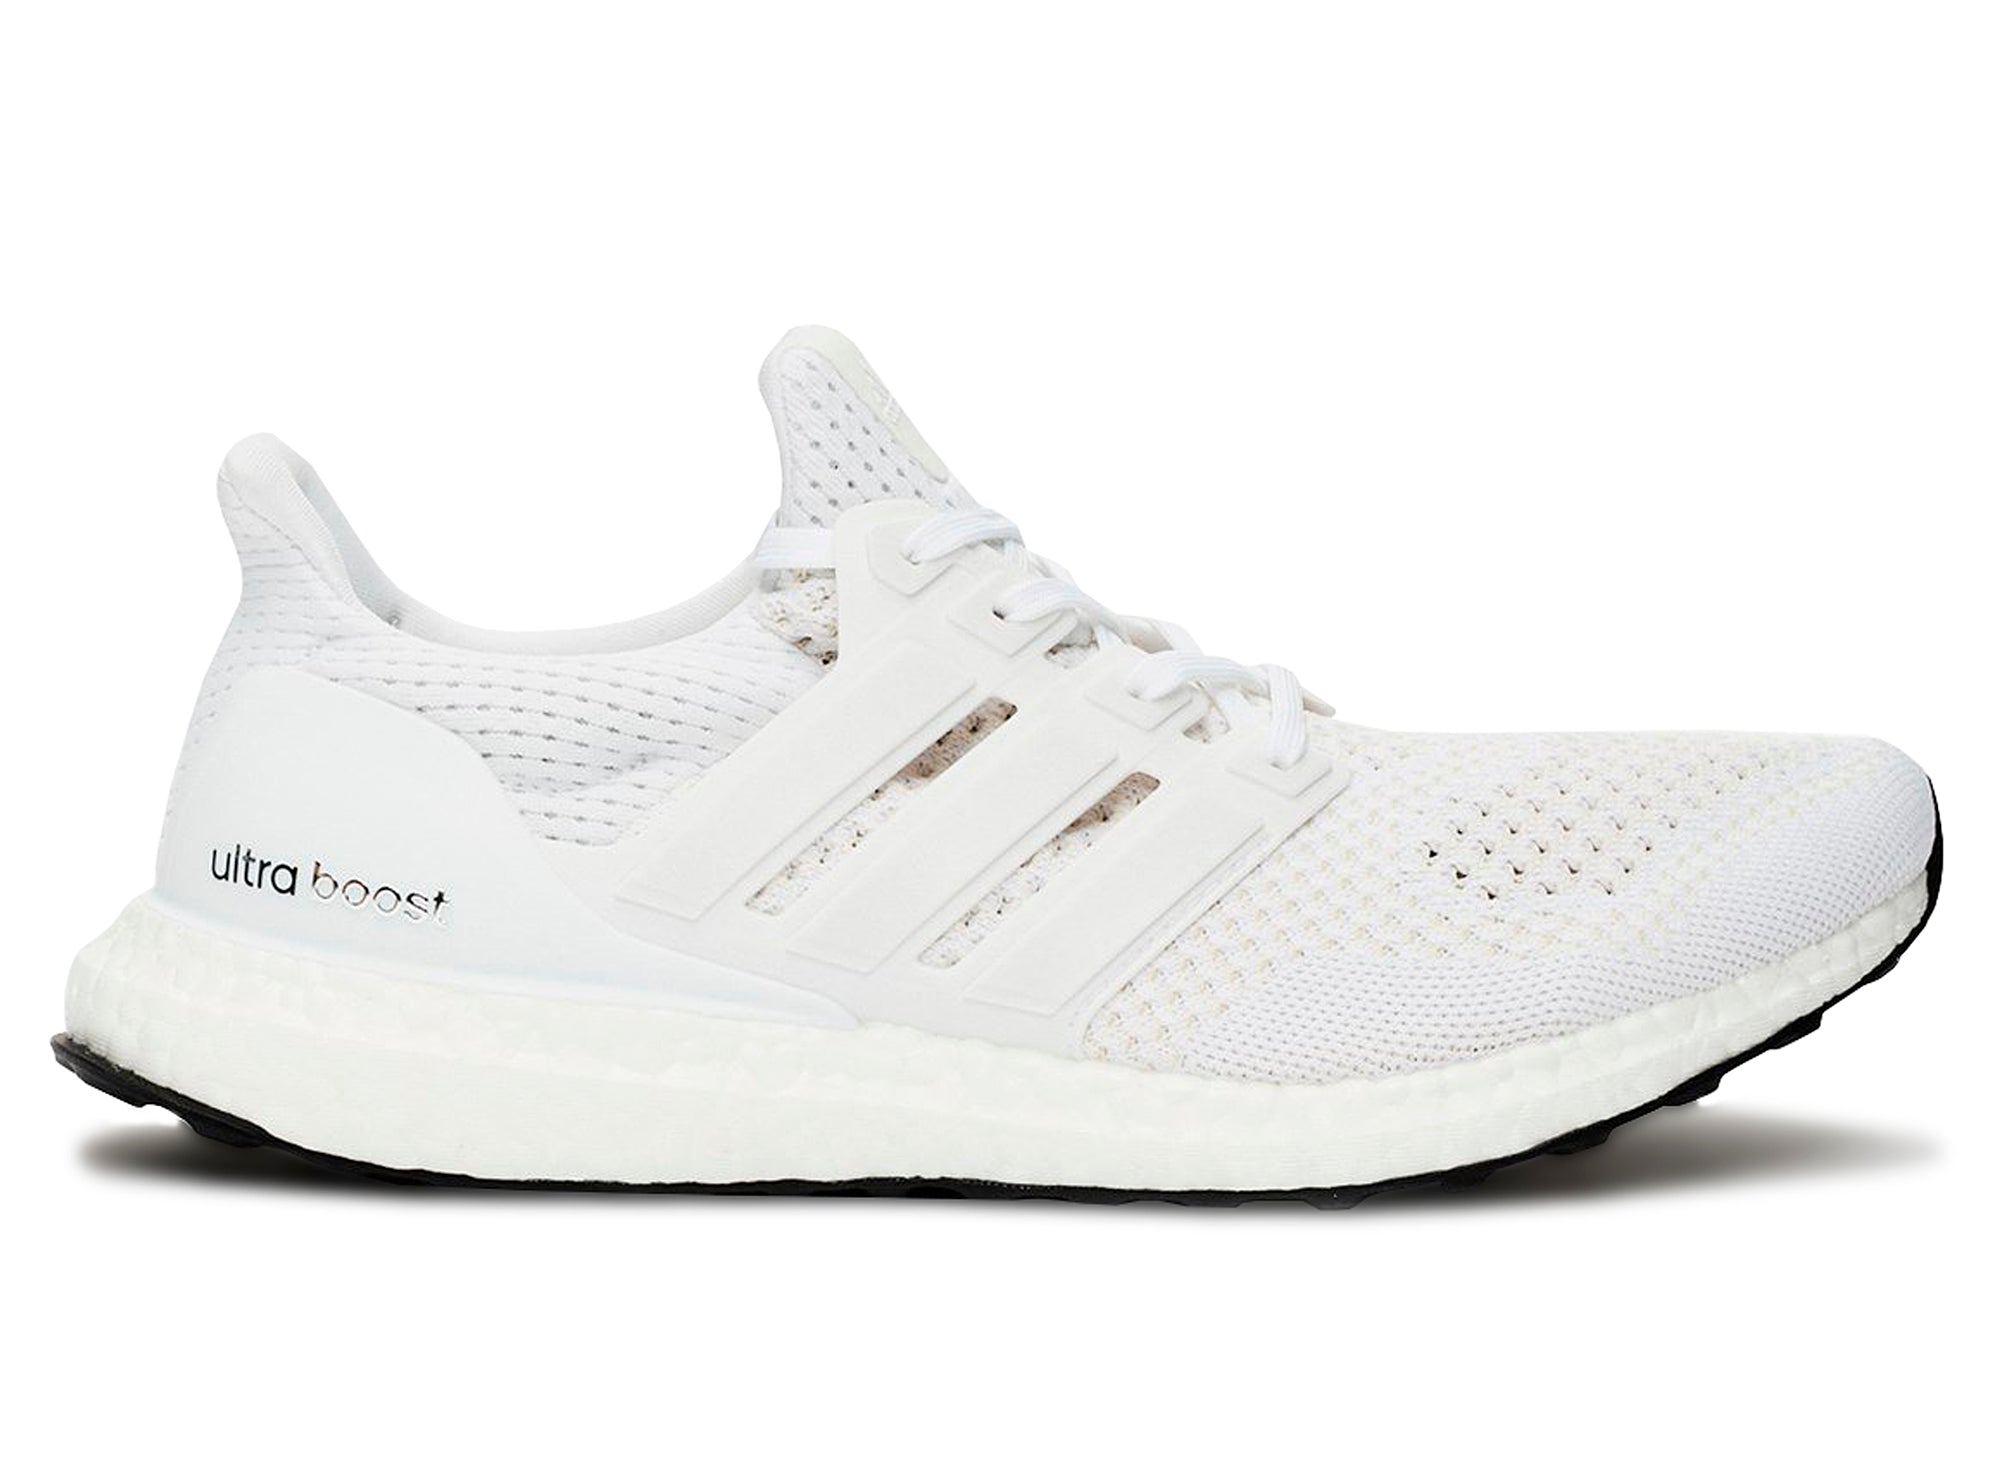 Adidas Ultraboost 1.0 OG 2020 'triple white'